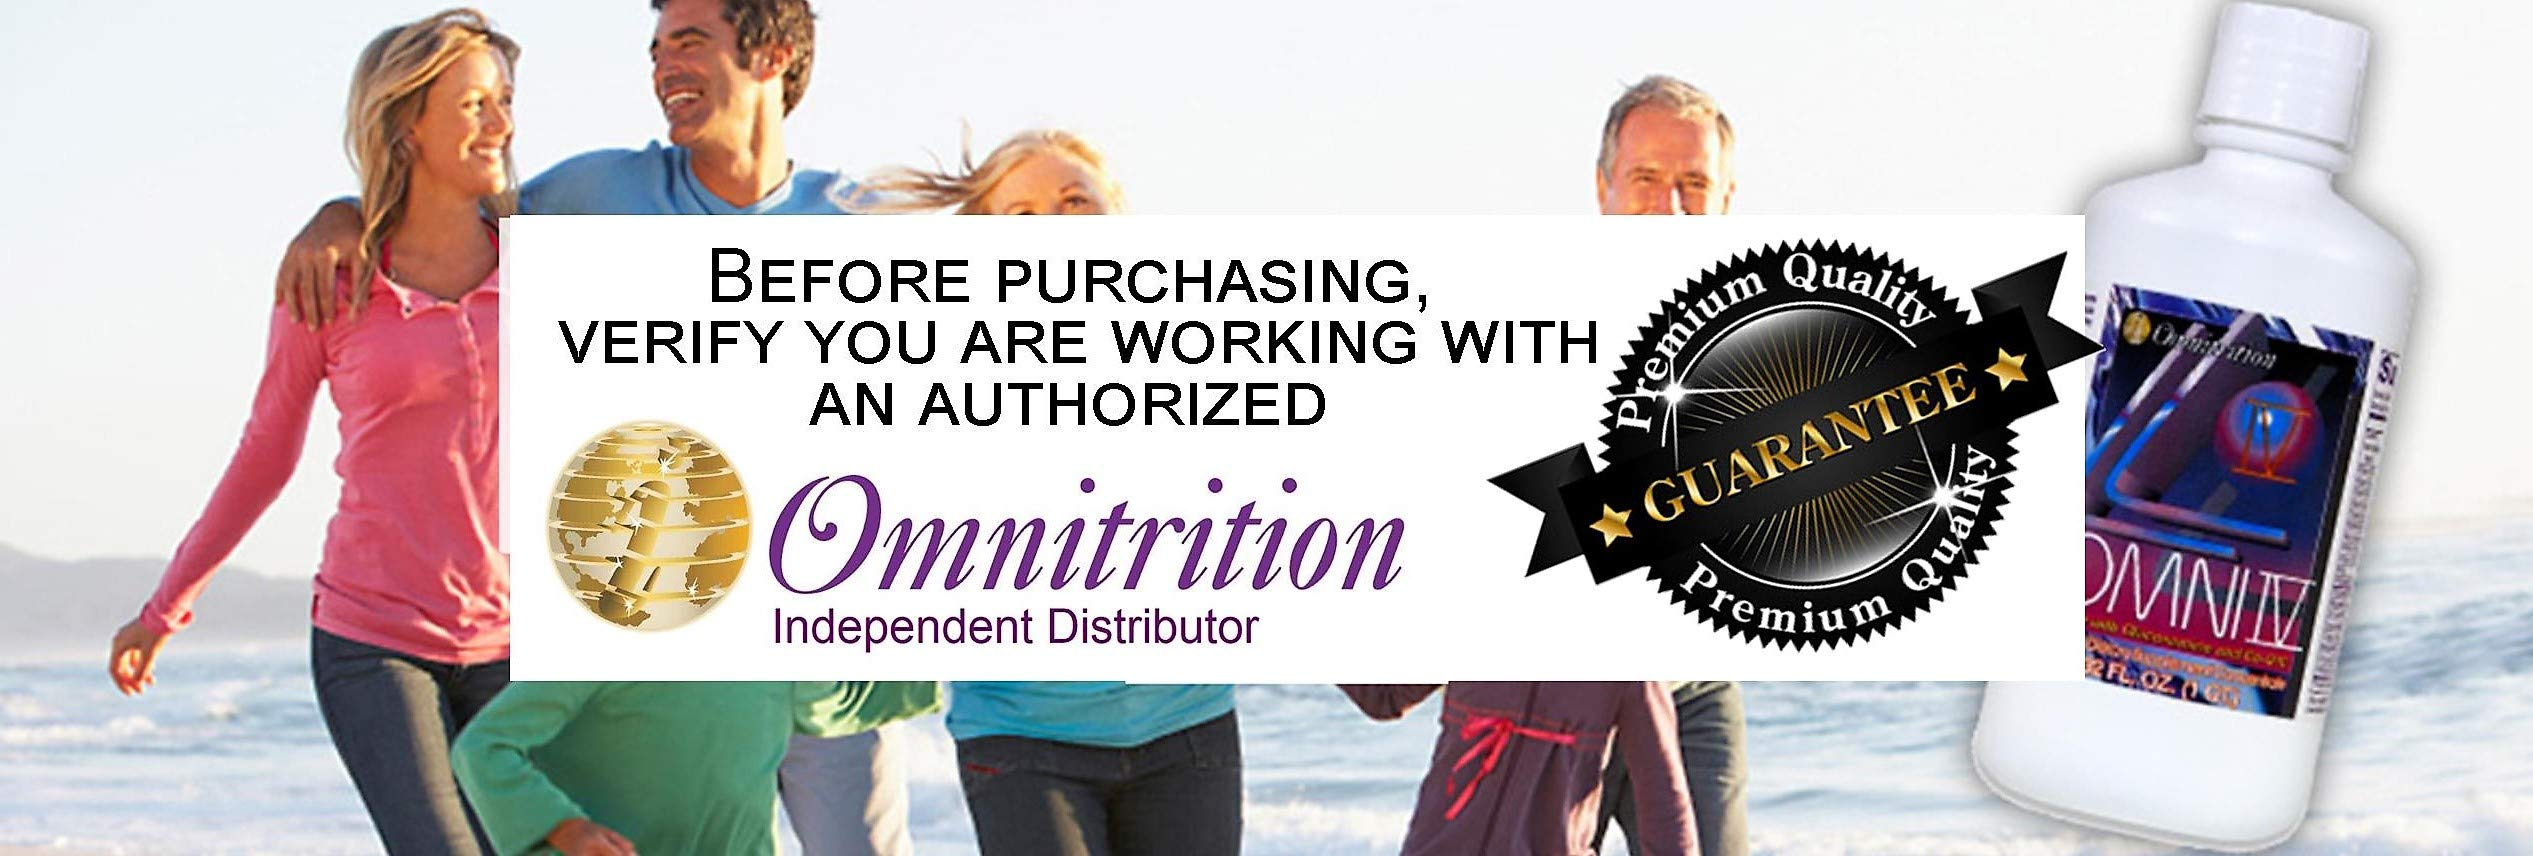 24/7 Digestive Support, Authentic Omnitrition {Bundle} Includes: Fiber~n~Mor - 180 Capsules, Omni Pro (Probiotic Supplement) 90 Capsules *Bonus* Samples and a Snapgate 10 Ft. Carabiner Tape Measure by Generic